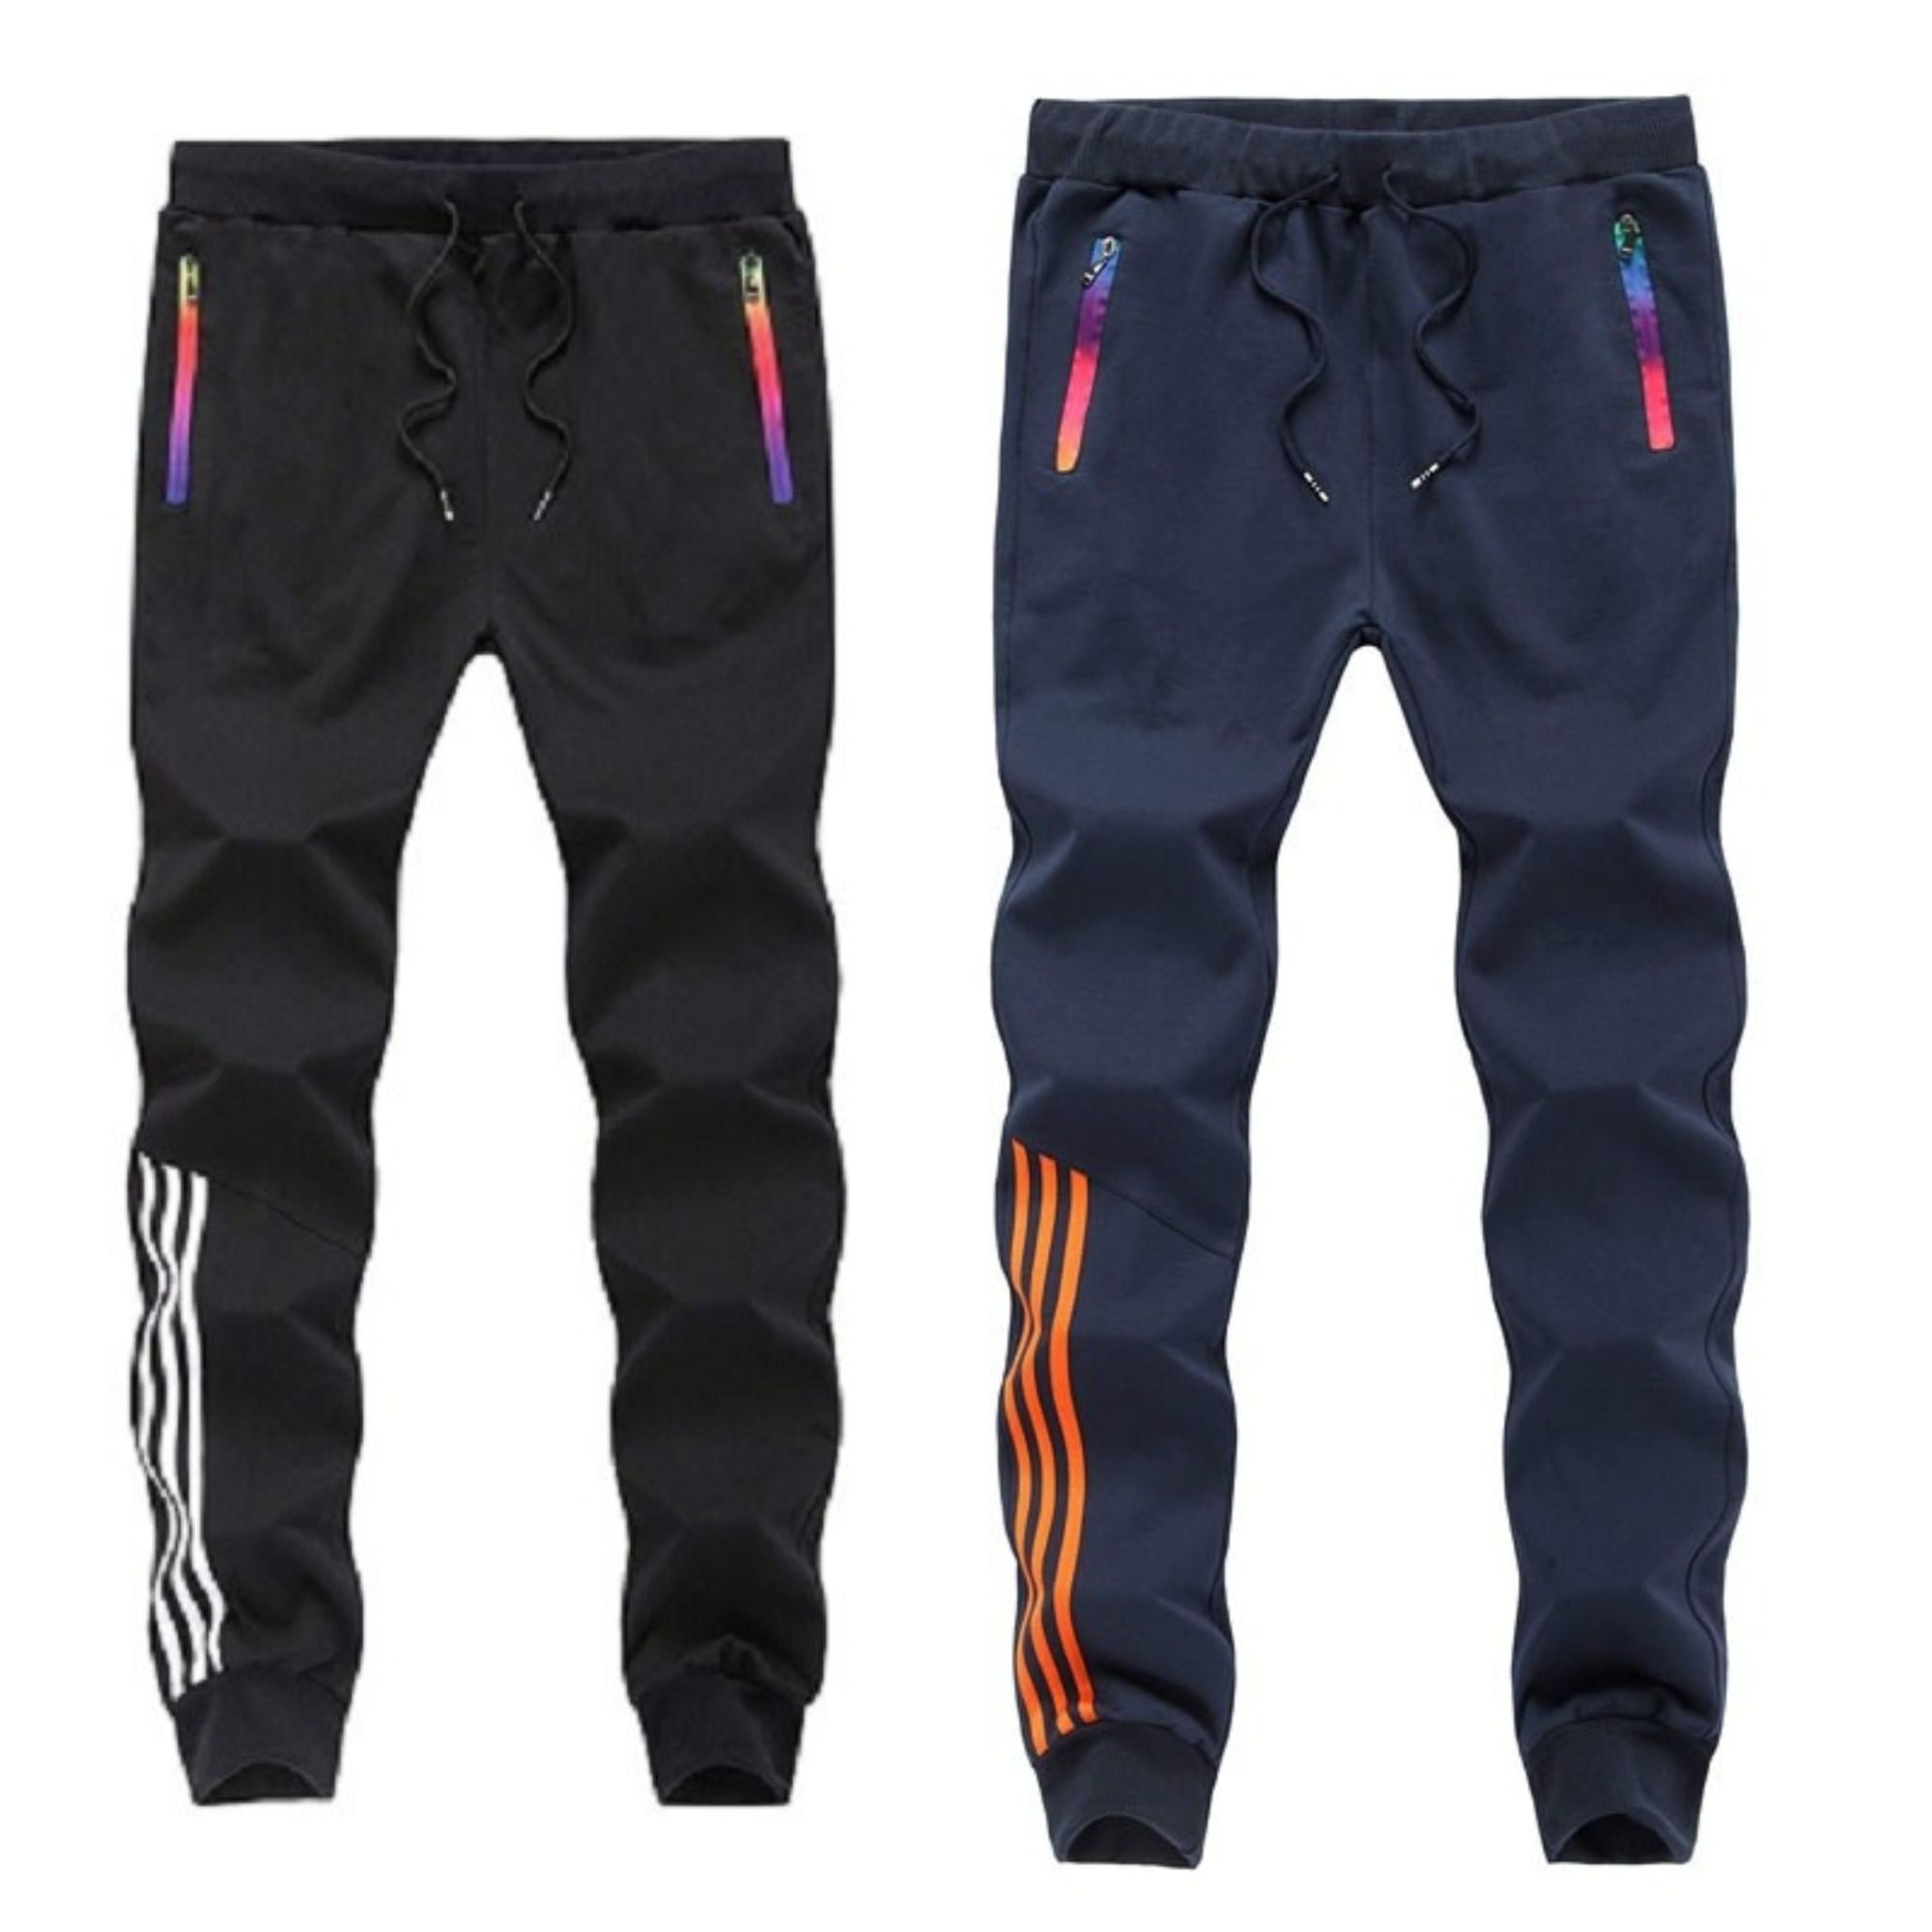 Joggers Park Pack Of 2 Black Blue Skinny Fit Sports Track Pants For Mens With Zipper Pockets